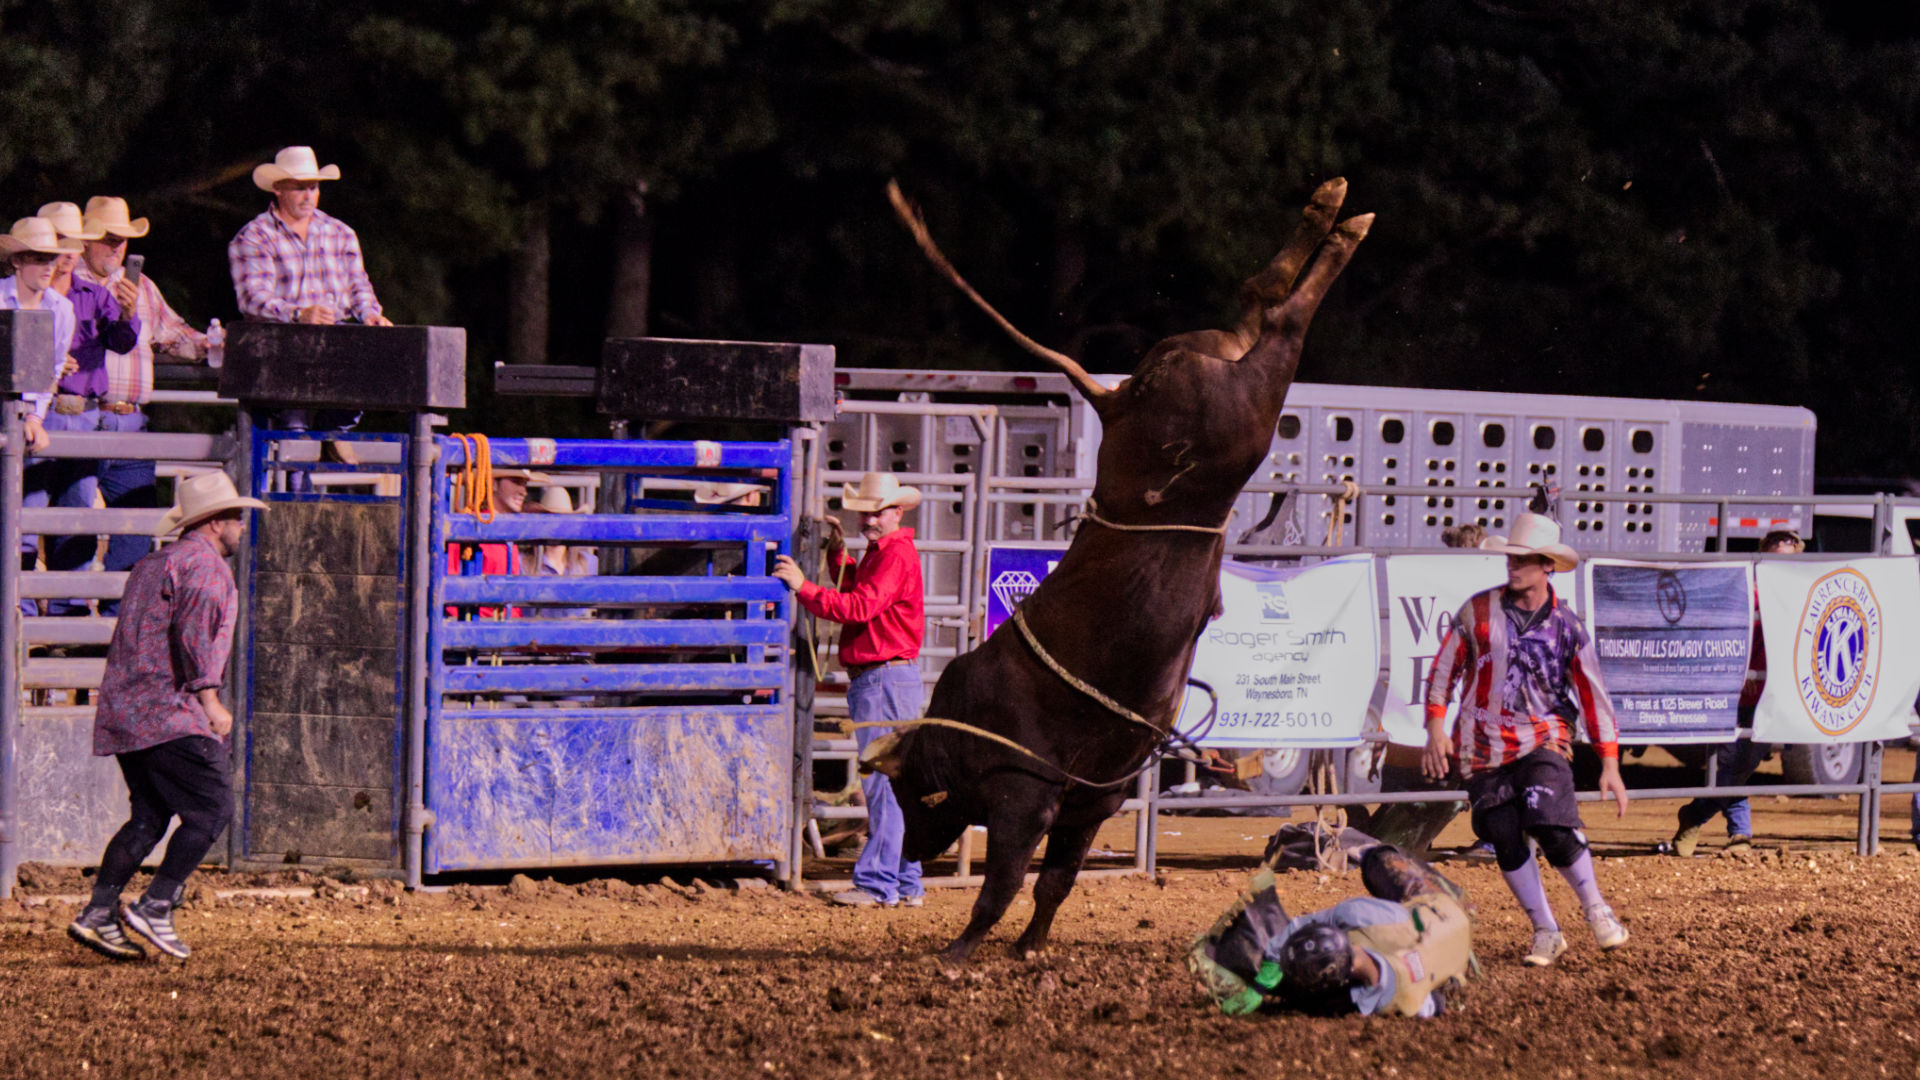 A bull in full kick at a rodeo.